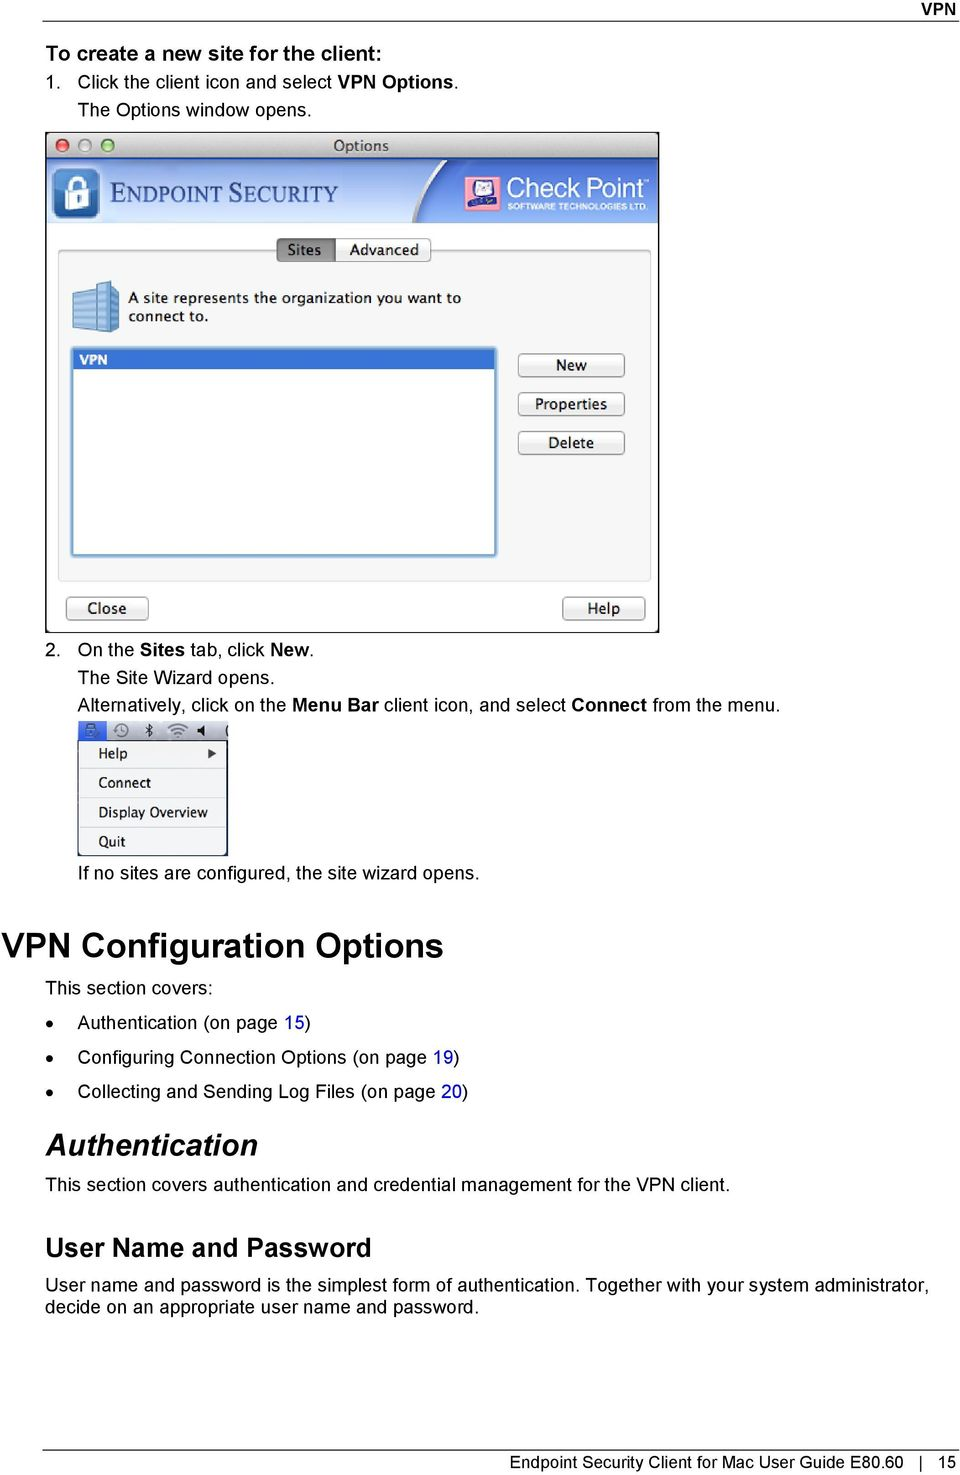 VPN Configuration Options This section covers: Authentication (on page 15) Configuring Connection Options (on page 19) Collecting and Sending Log Files (on page 20) Authentication This section